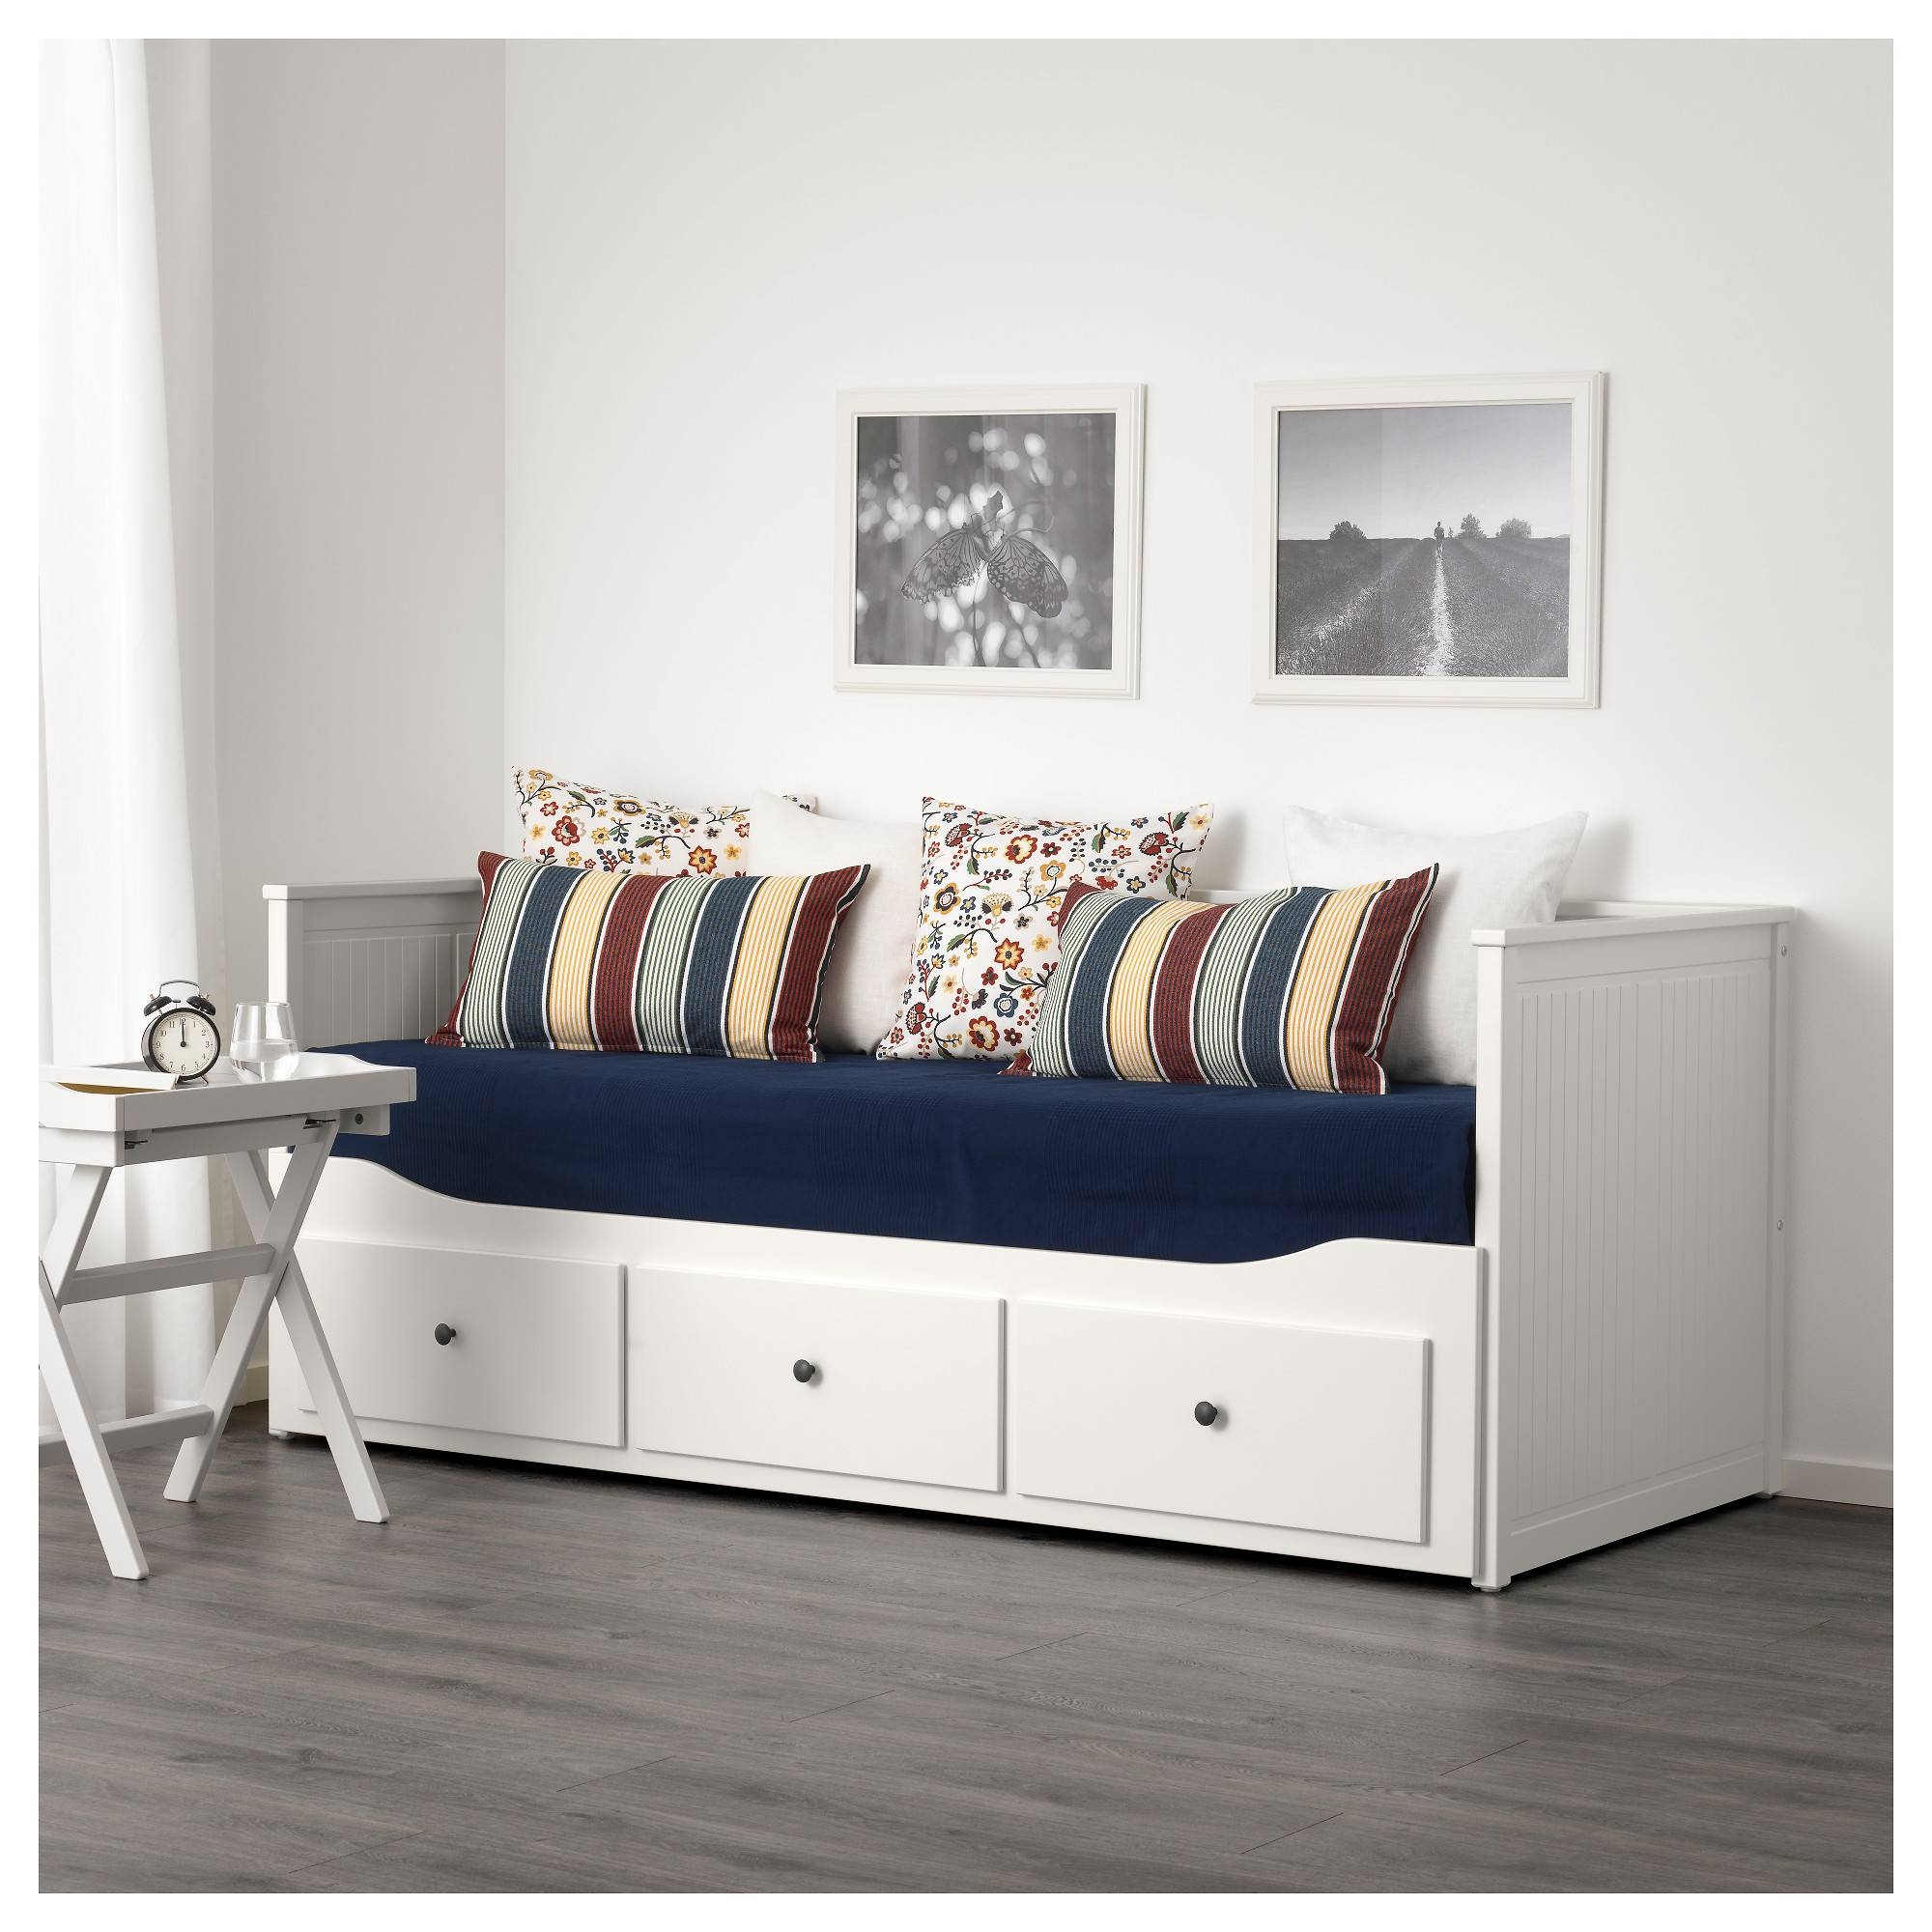 Hemnes Day-Bed W 3 Drawers/2 Mattresses White/moshult Firm 80X200 intended for Sofa Day Beds (Image 19 of 30)